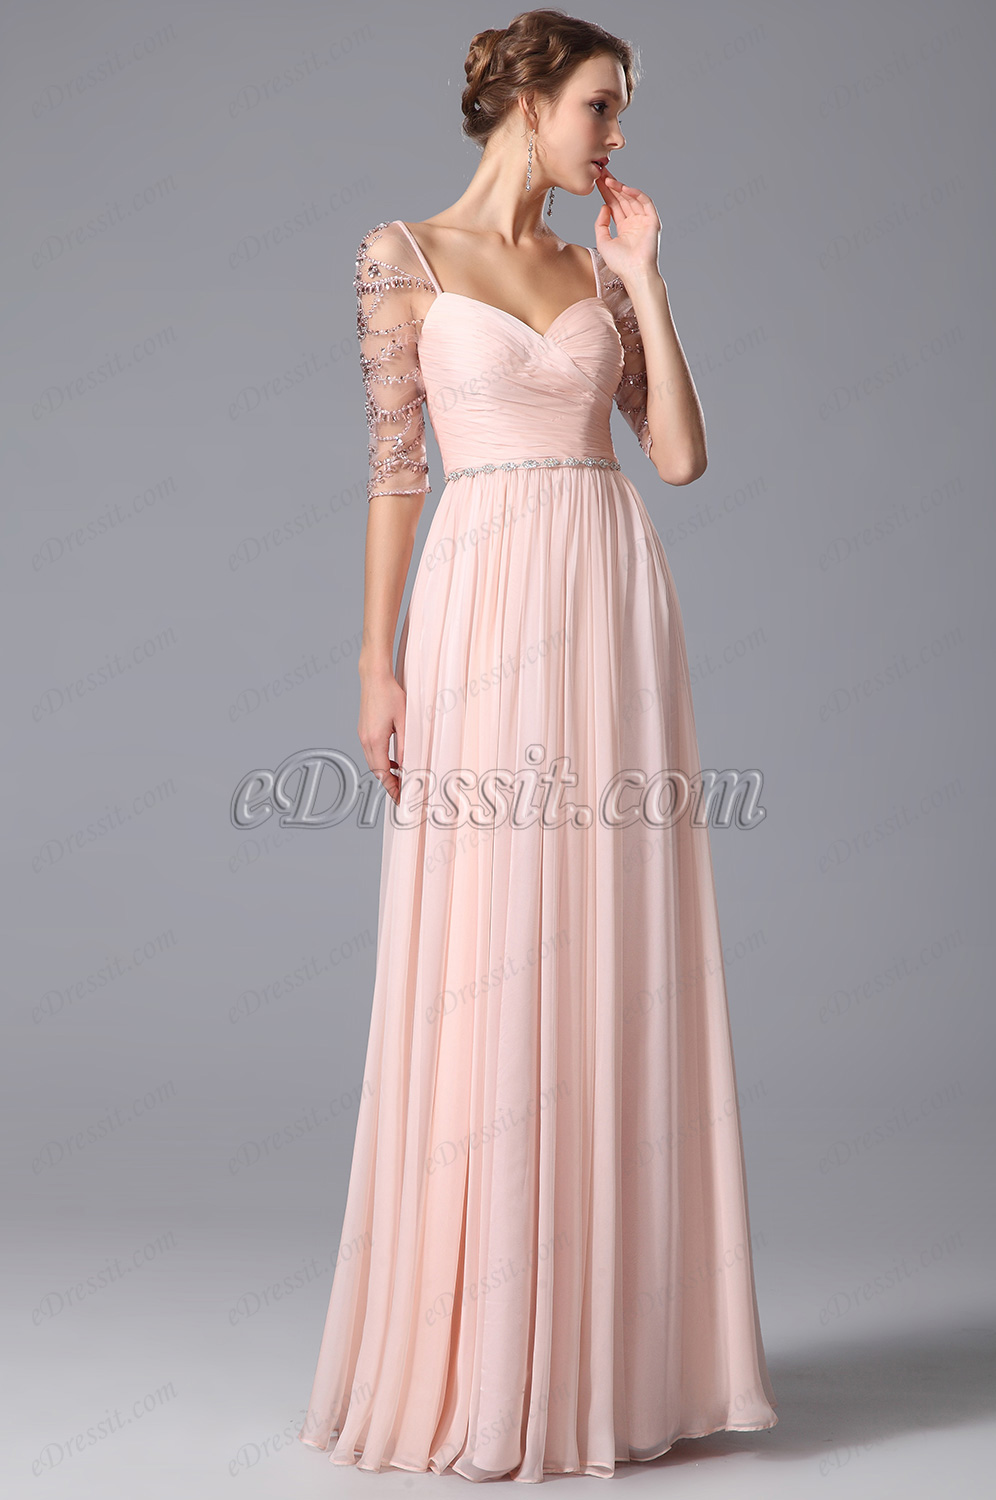 The Best Ways to Match a Pink Prom Dress - Simple Elegance